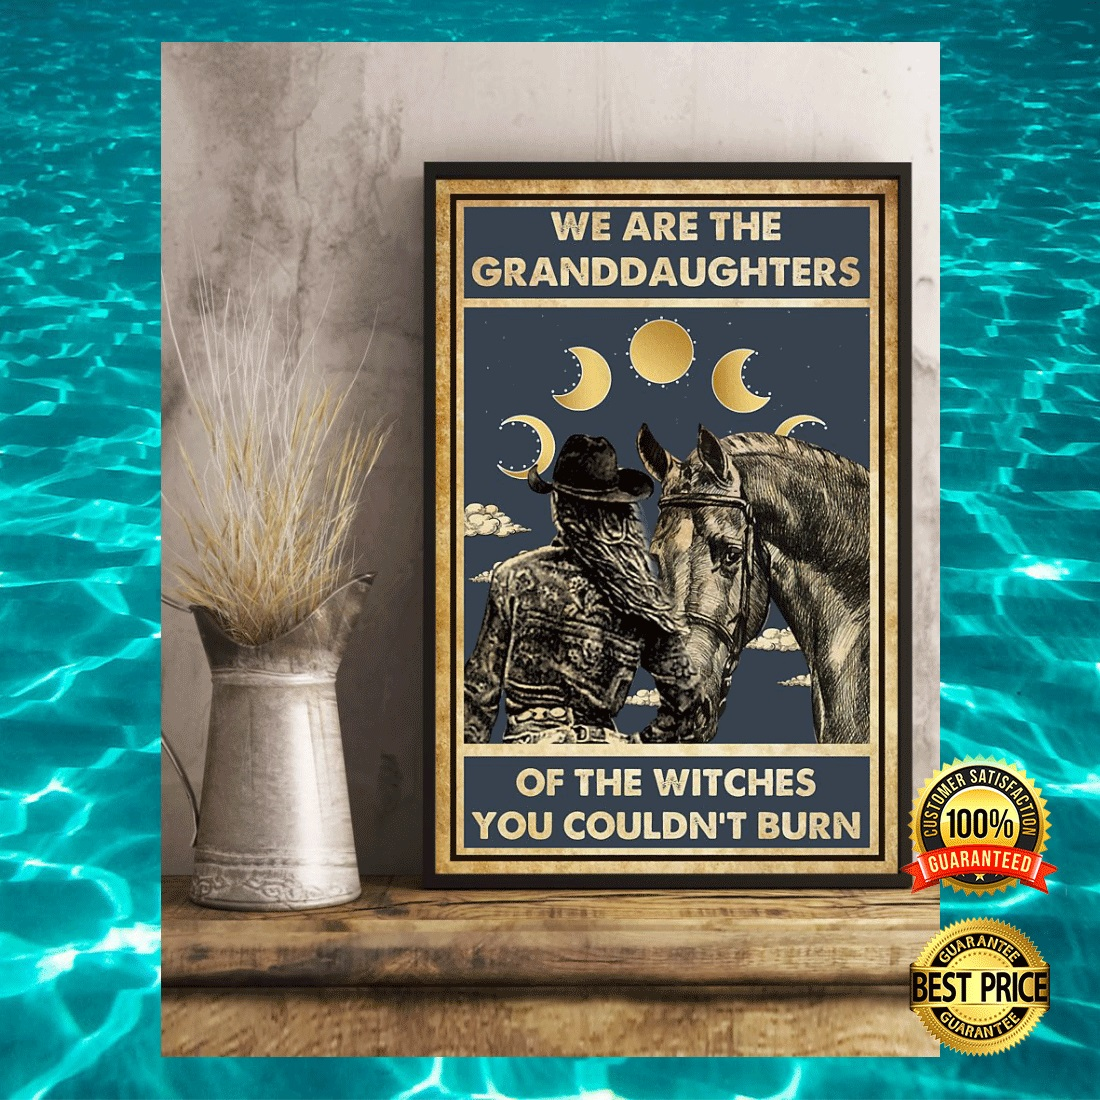 COWGIRL WE ARE THE GRANDDAUGHTERS OF THE WITCHES YOU COULDN'T BURN POSTER 5